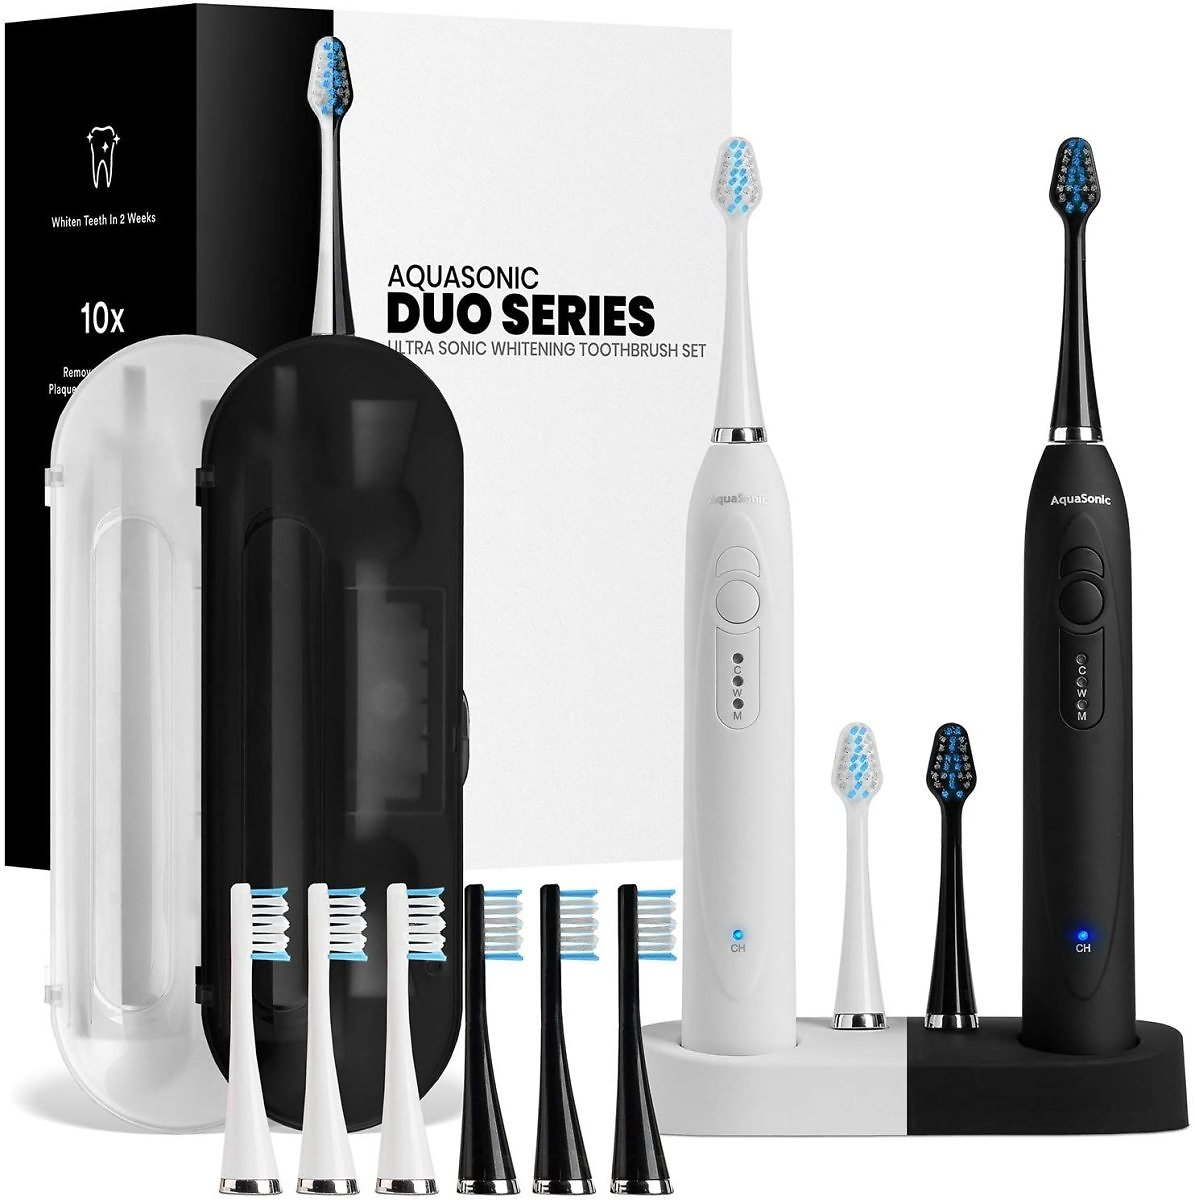 Up to 37% Off Aquasonic Electric Toothbrushes | Amazon